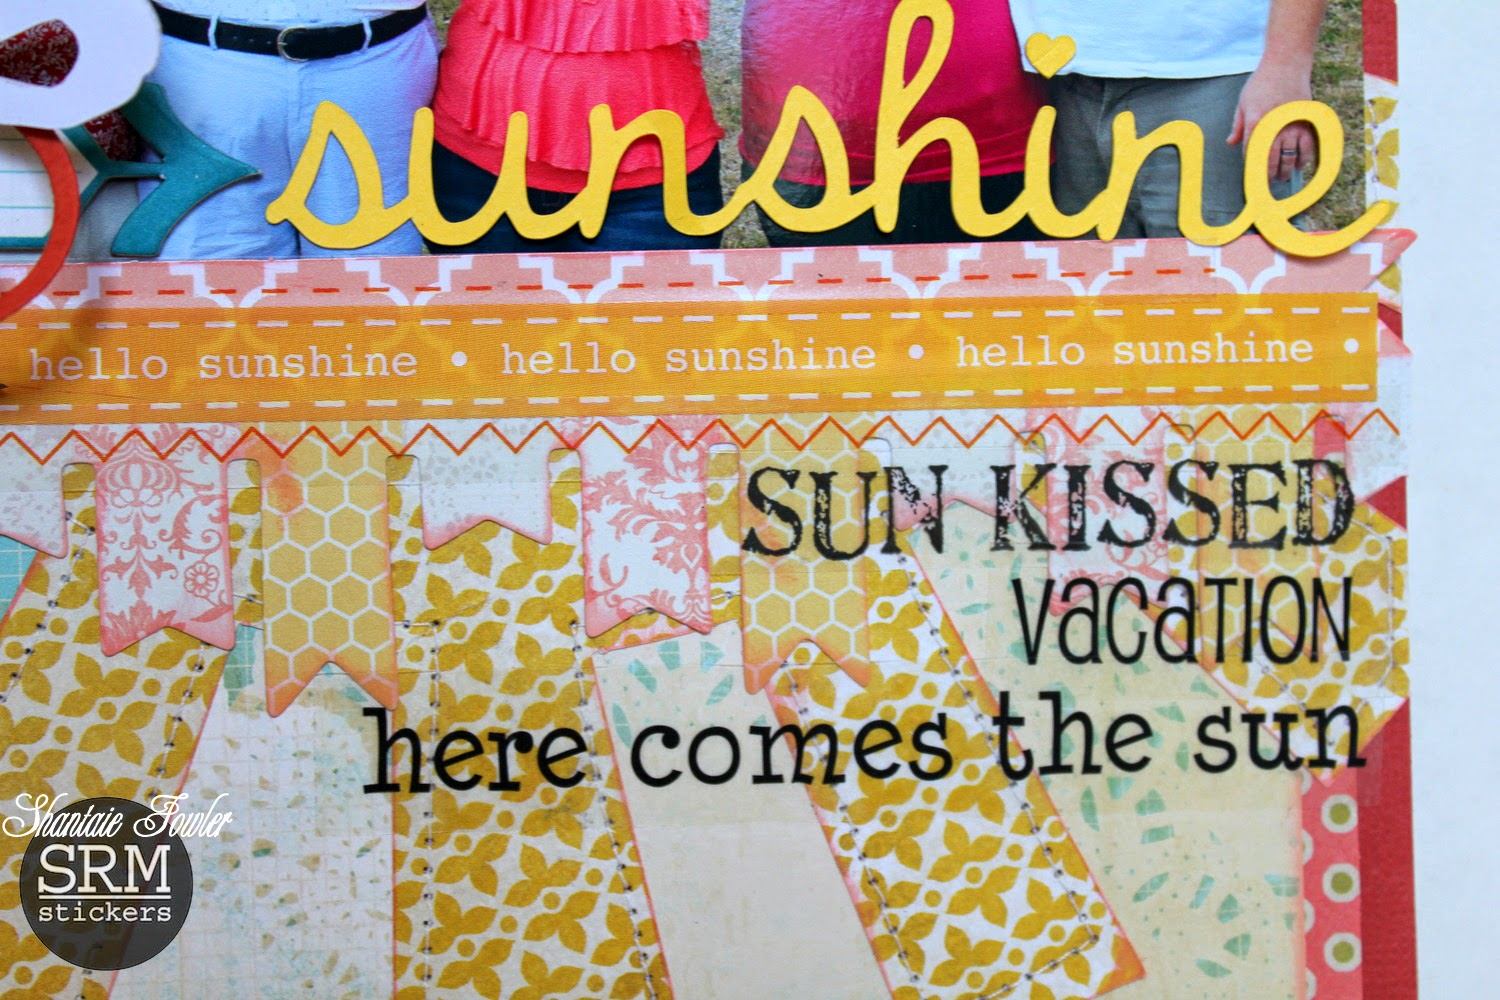 SRM Stickers Blog - Summer Layout by Shantaie - #layout #stickers #summer